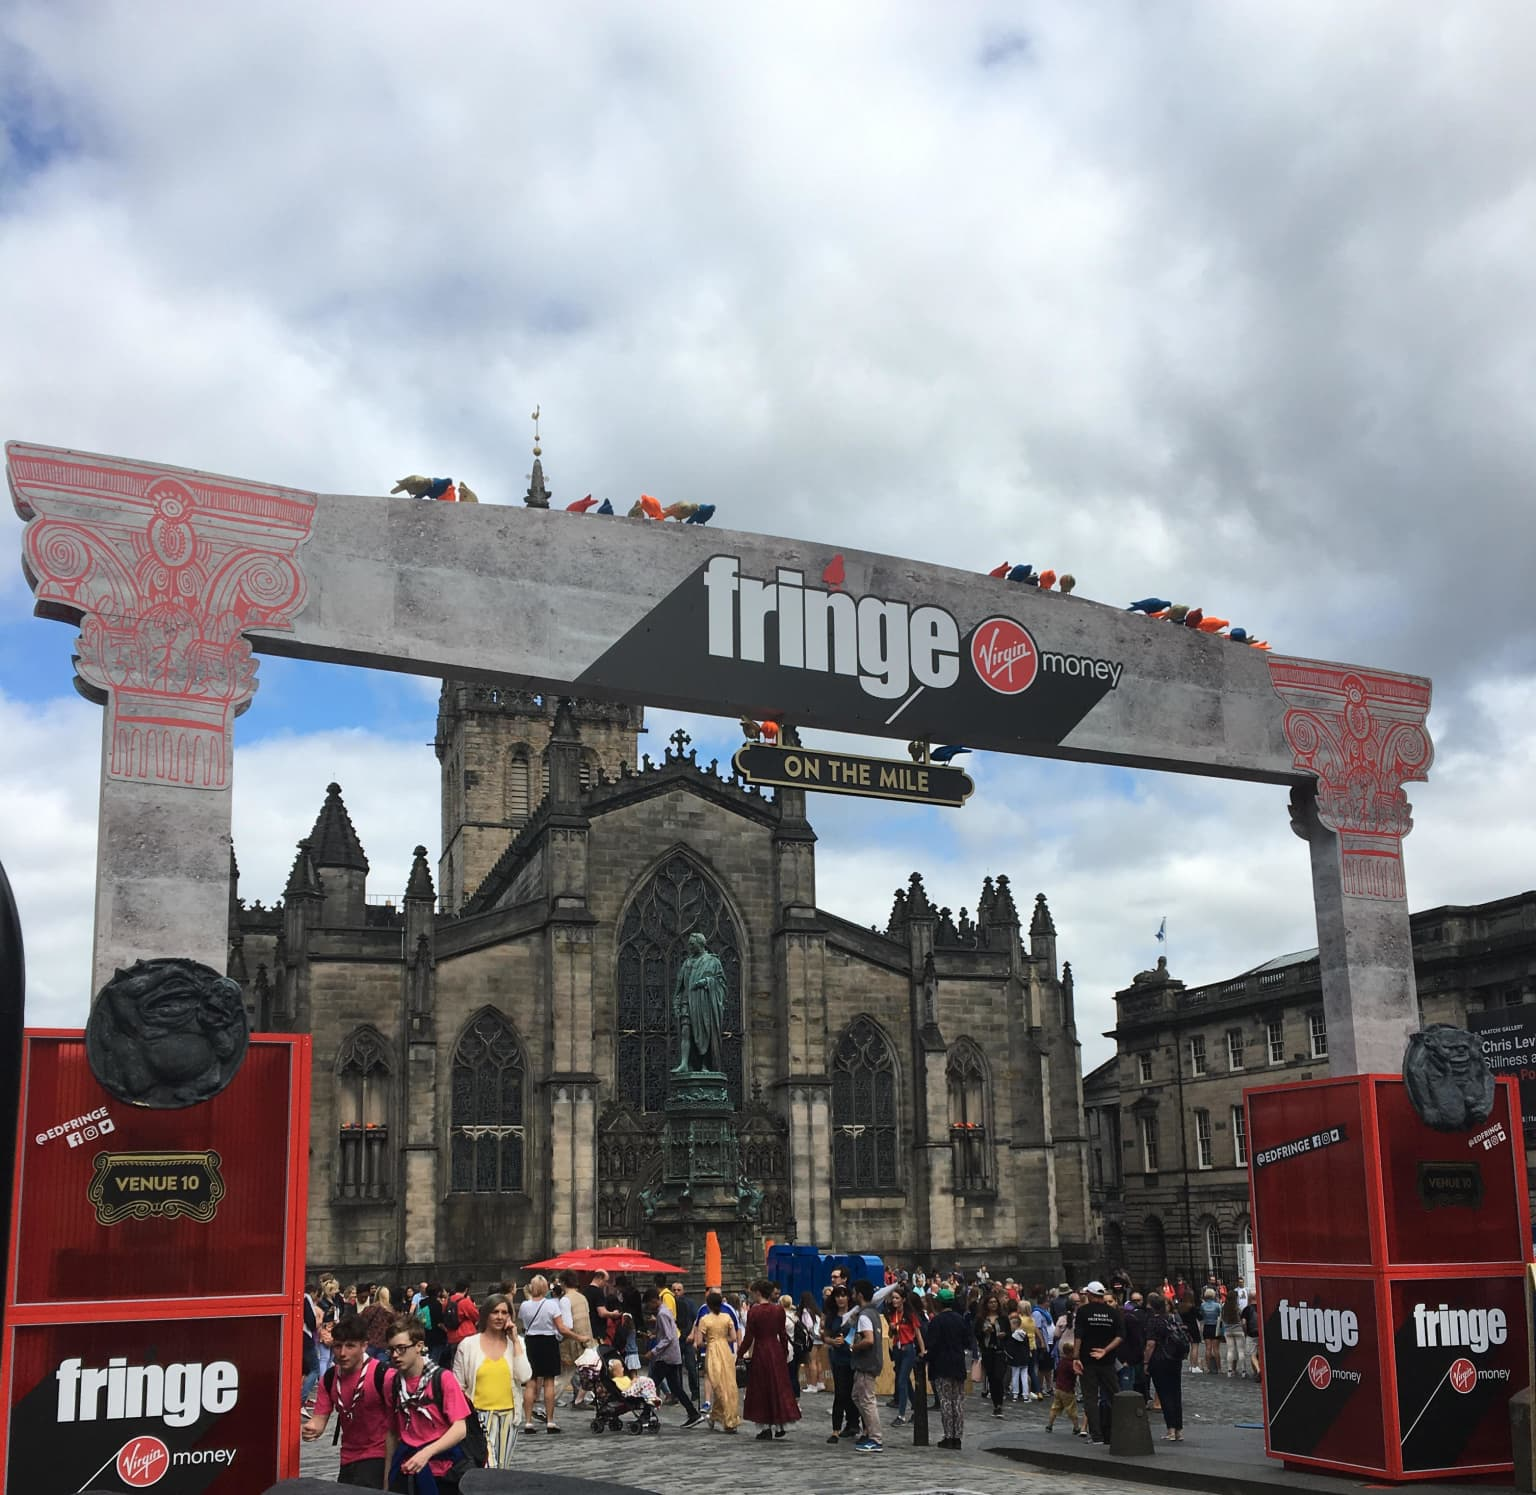 Edinburgh Fringe Street Events